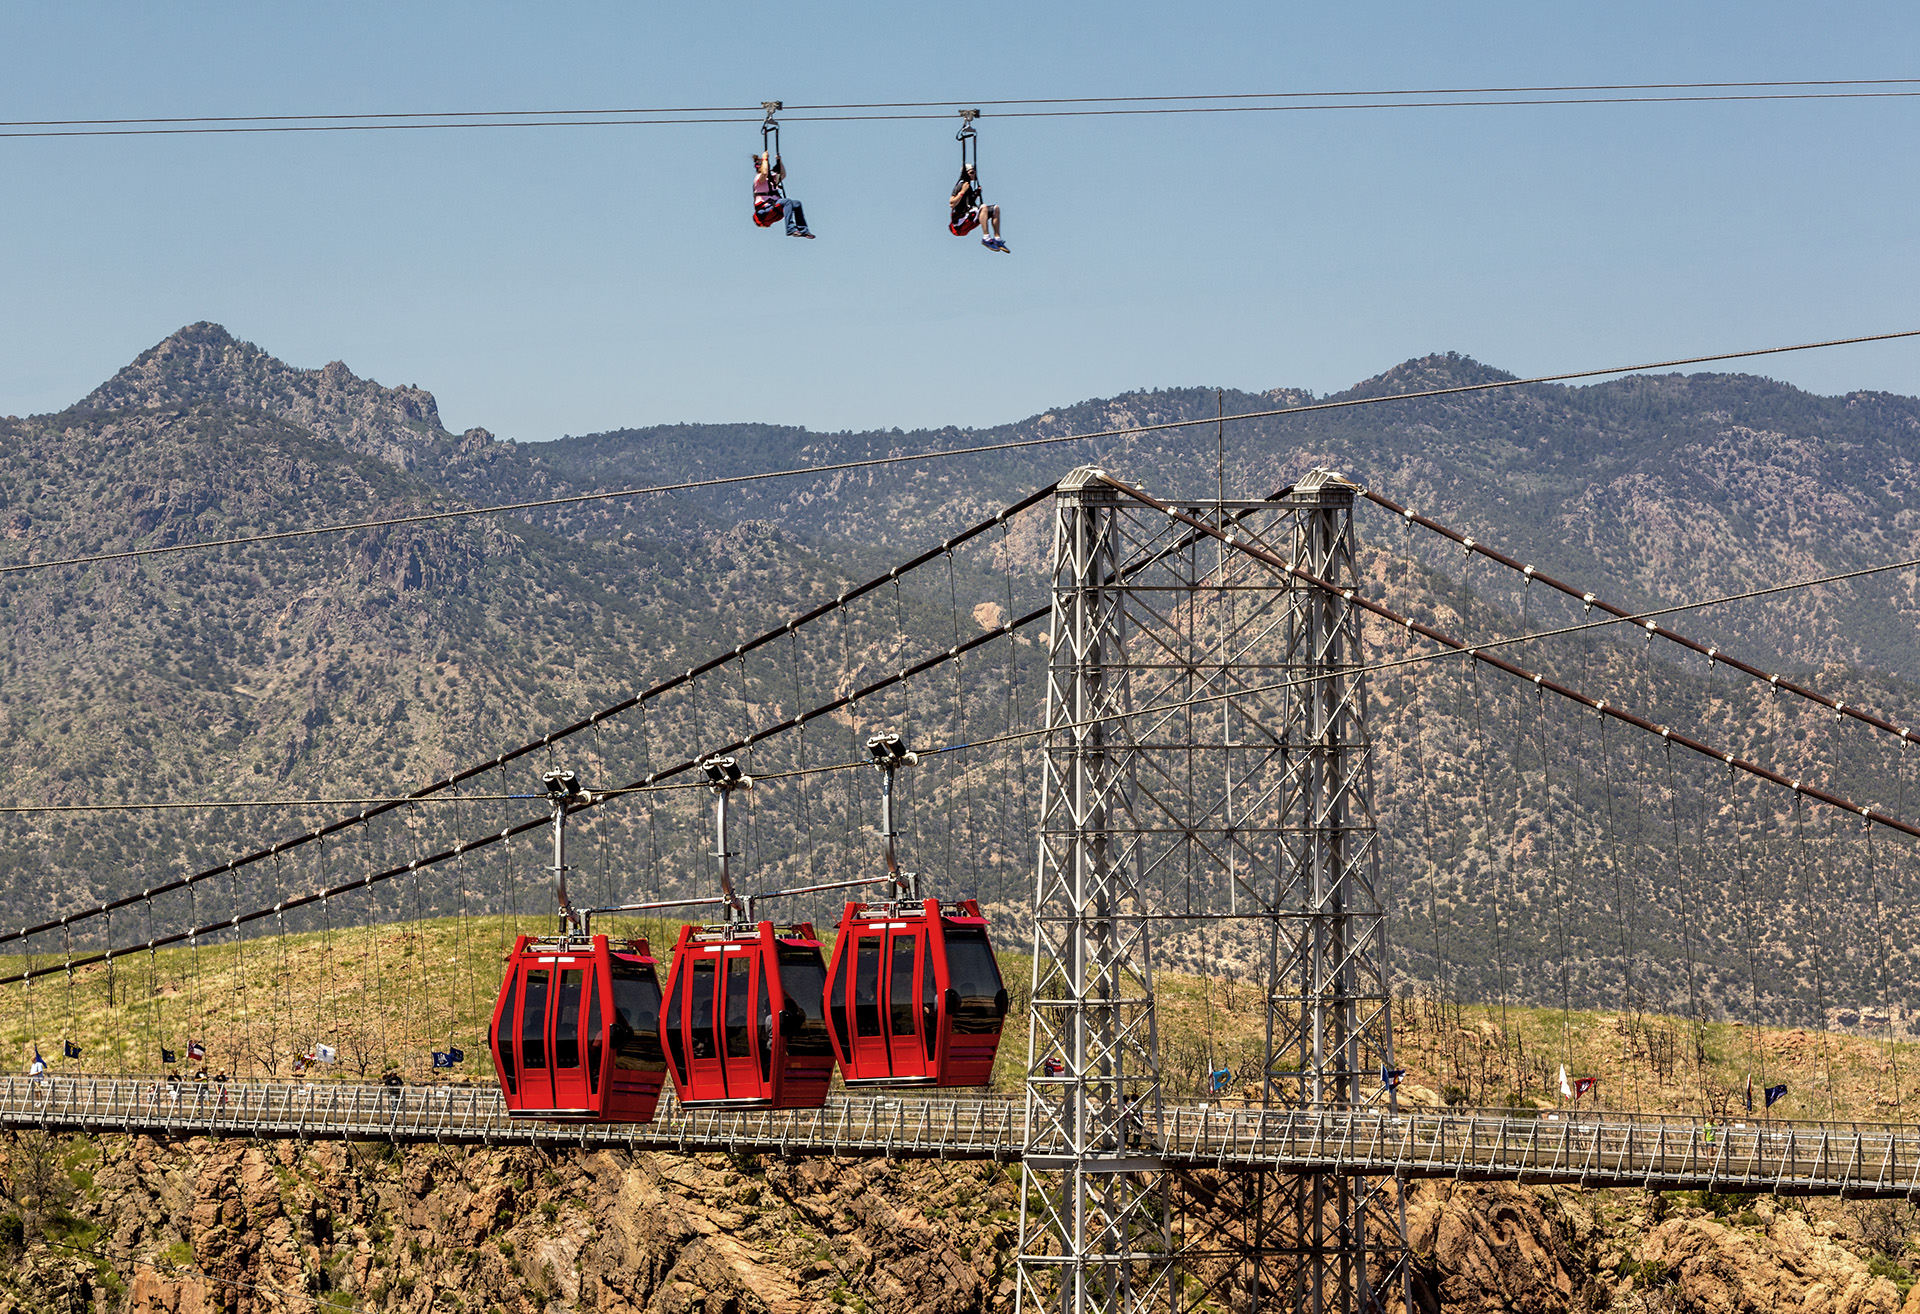 View of the aerial gondolas and the zipline